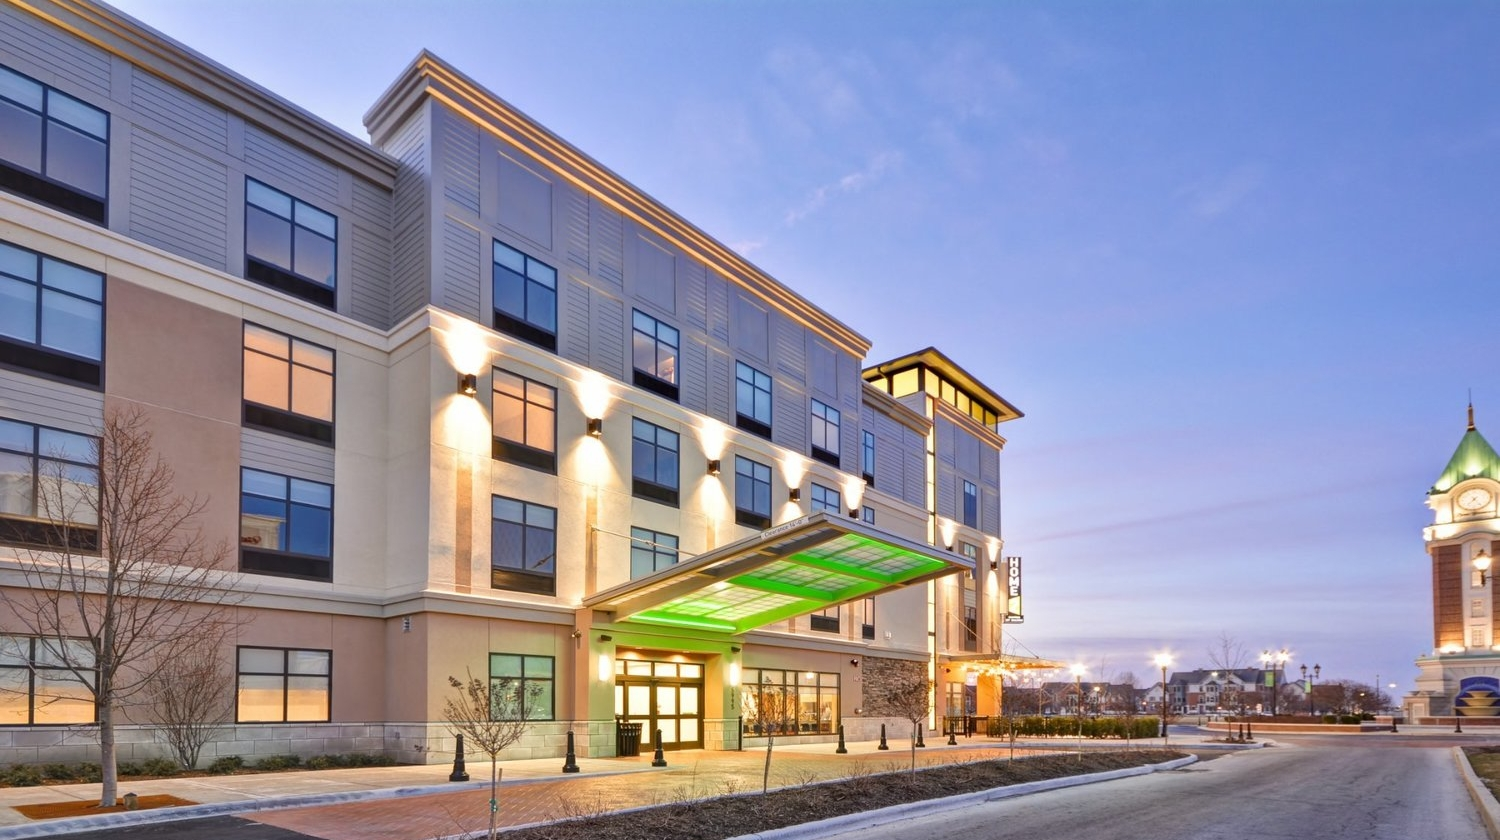 HOME2 SUITES BY HILTON - PERRYSBURG, OH